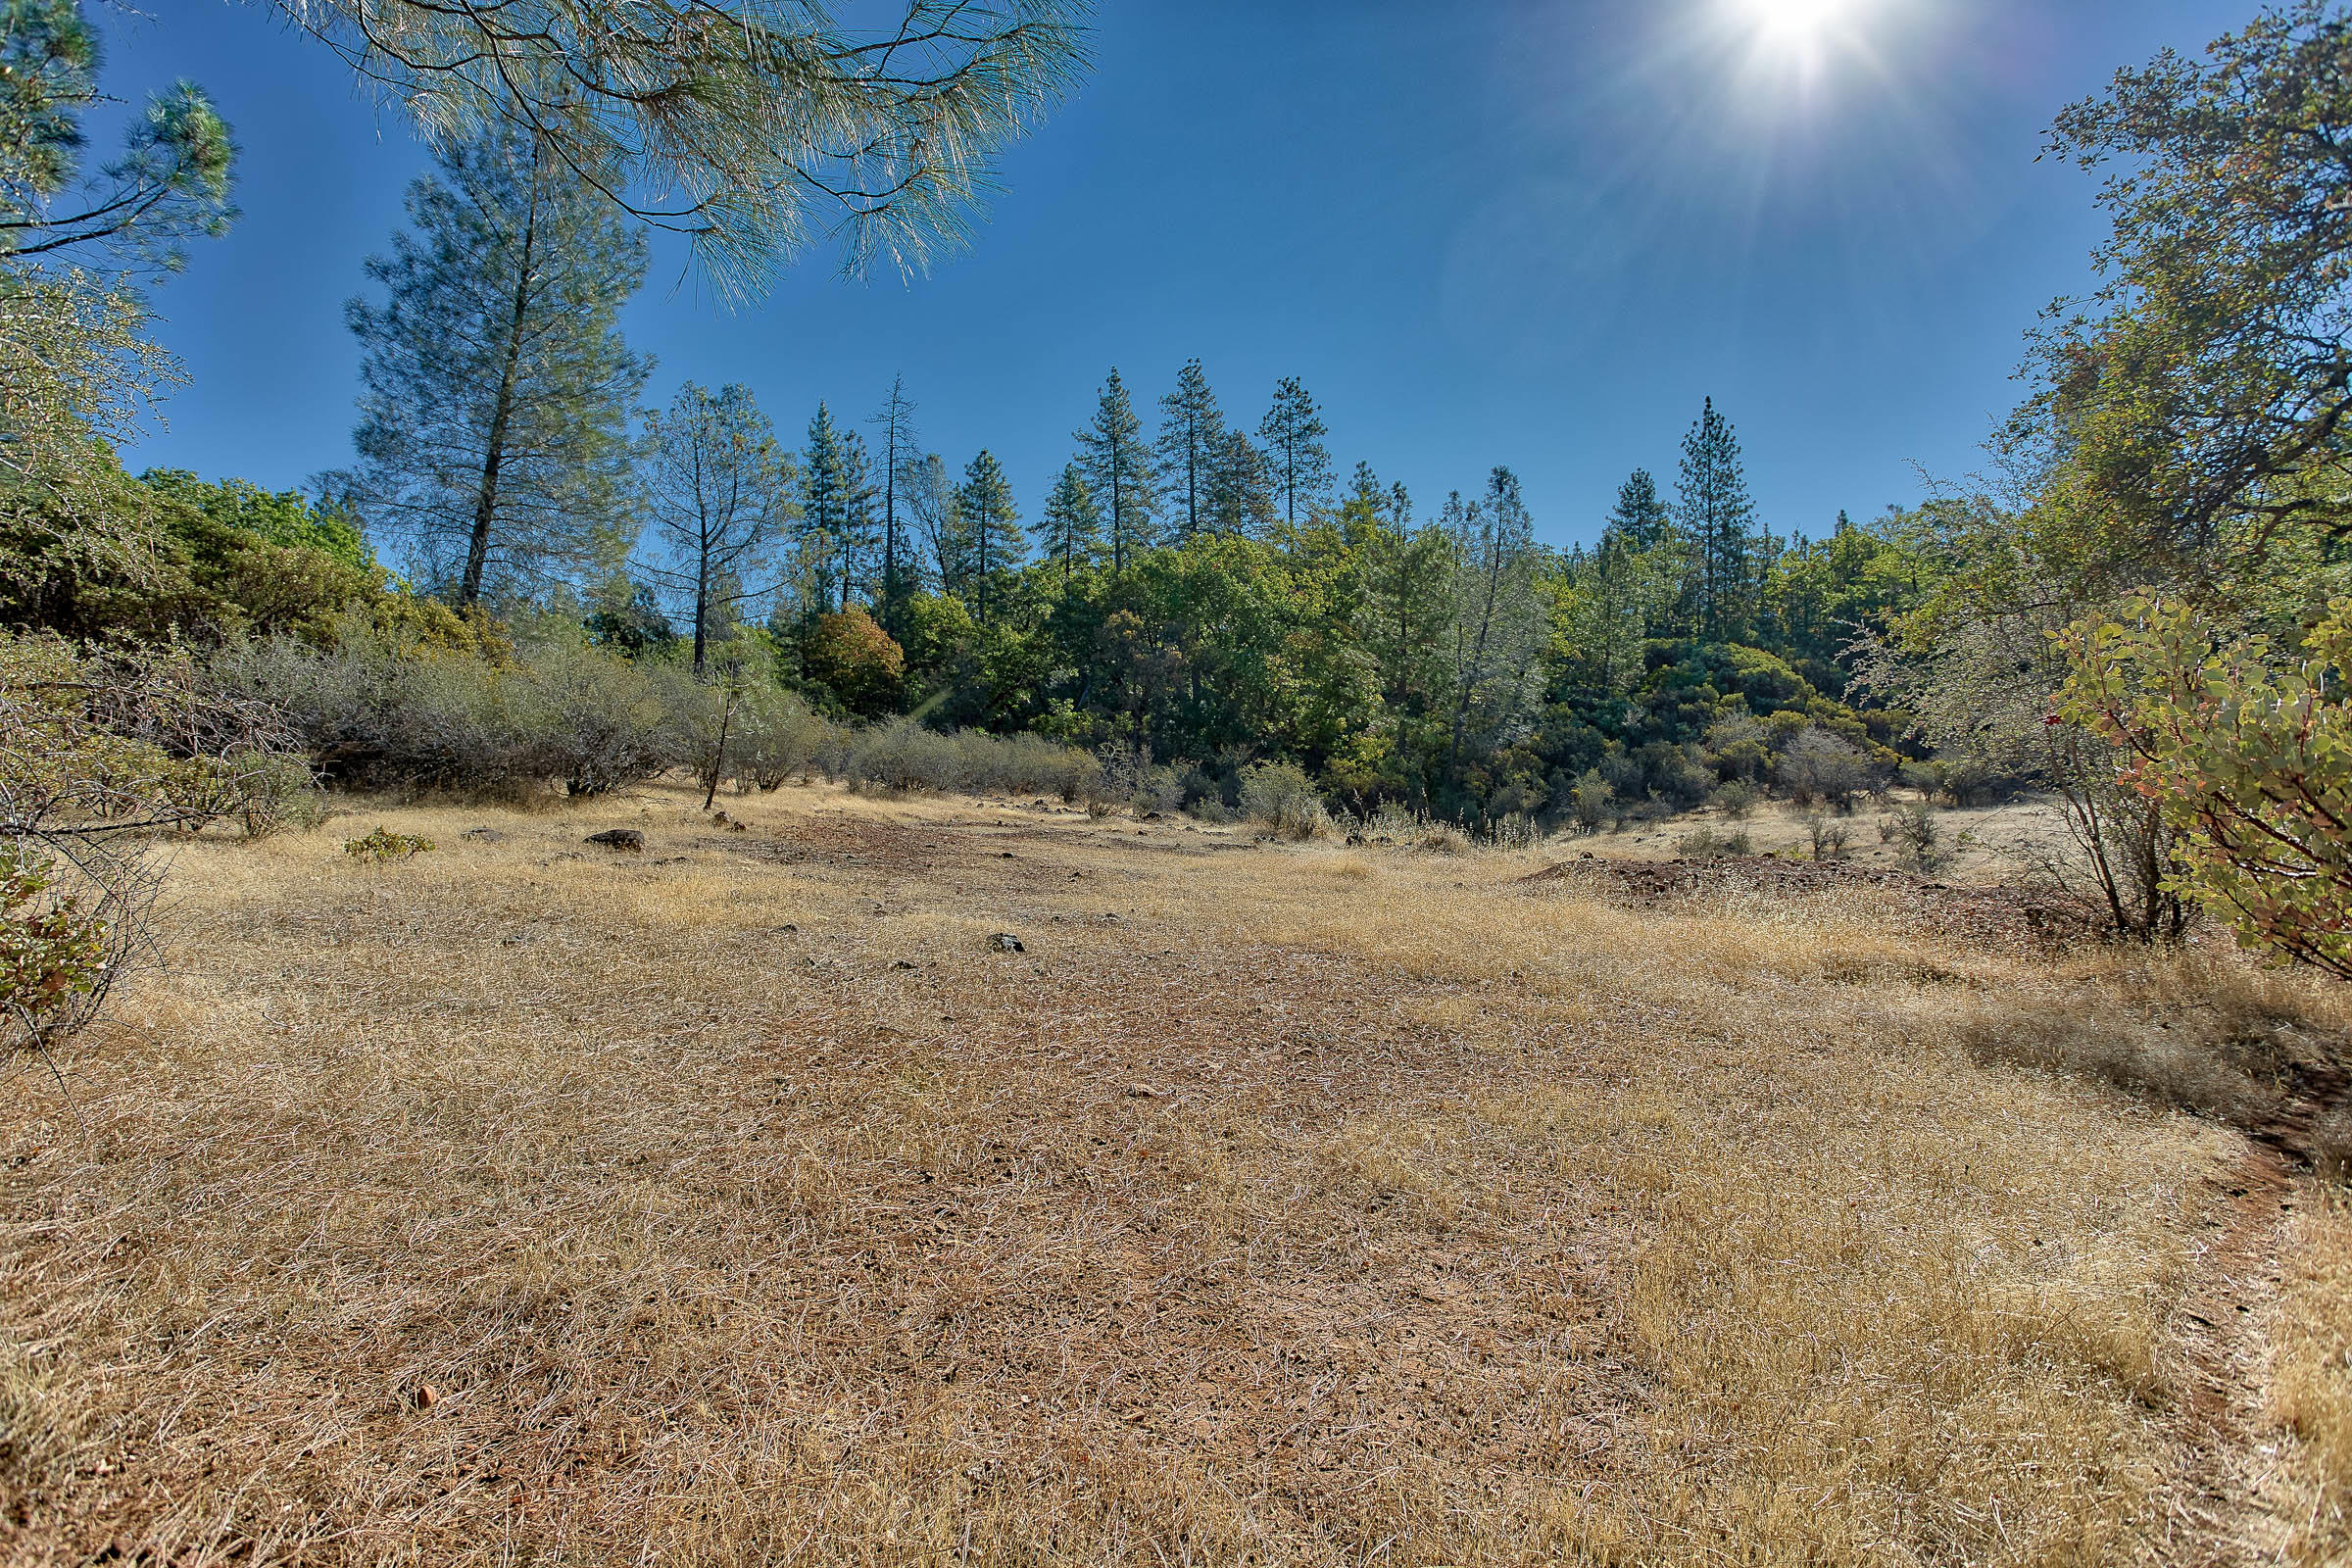 10707 Hufford Ranch Rd, Whitmore, CA 96096